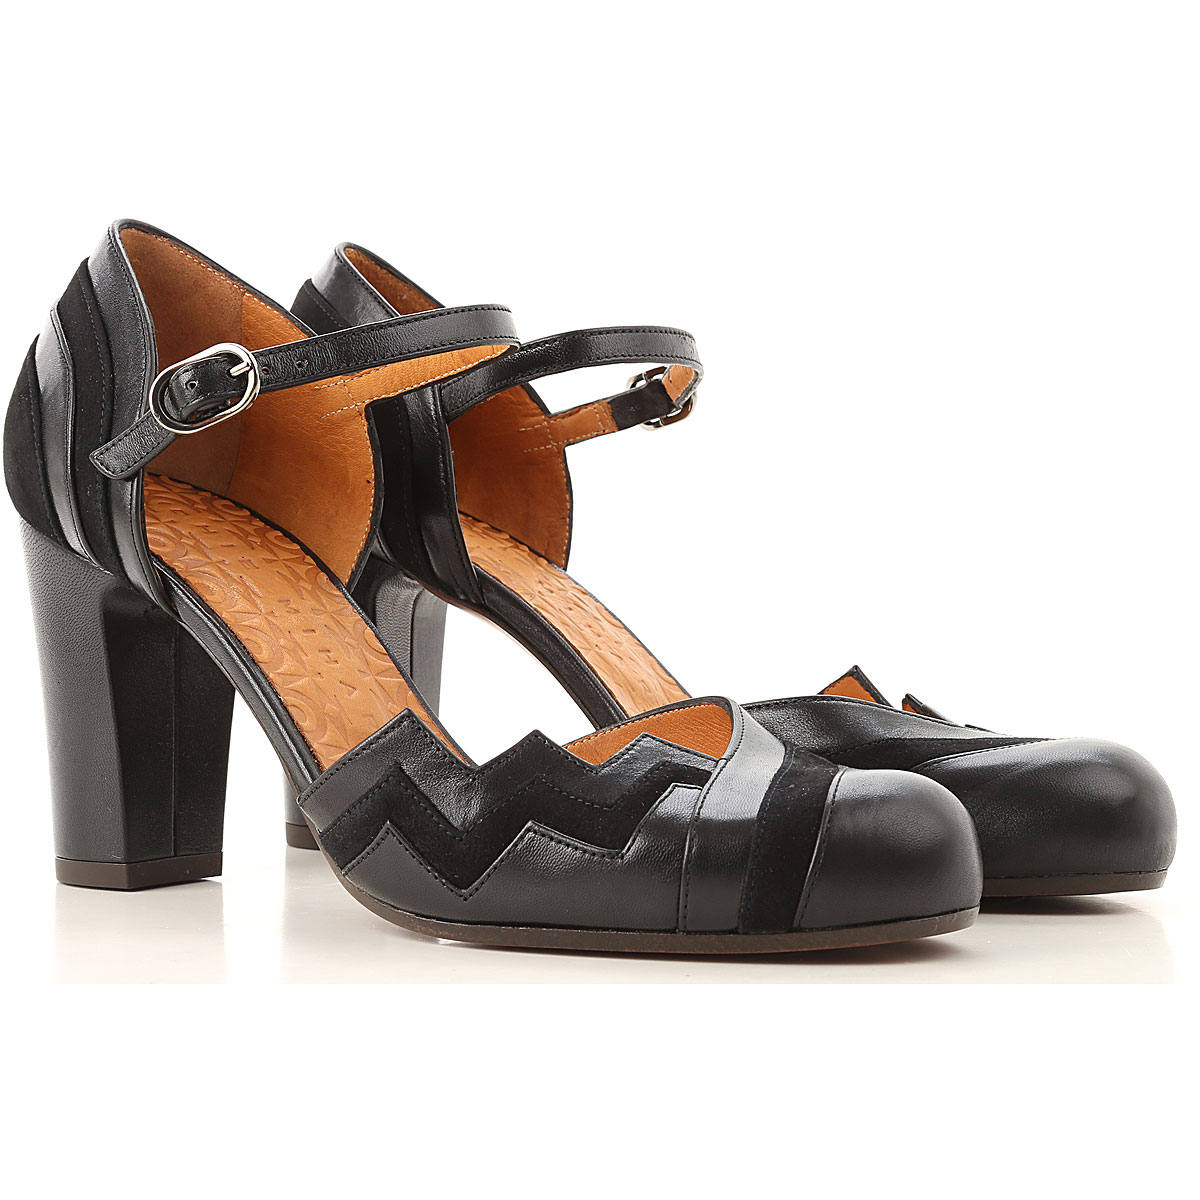 Image of Chie Mihara Sandals Heeled Womens, Black, Leather, 2017, 6 7 8 9